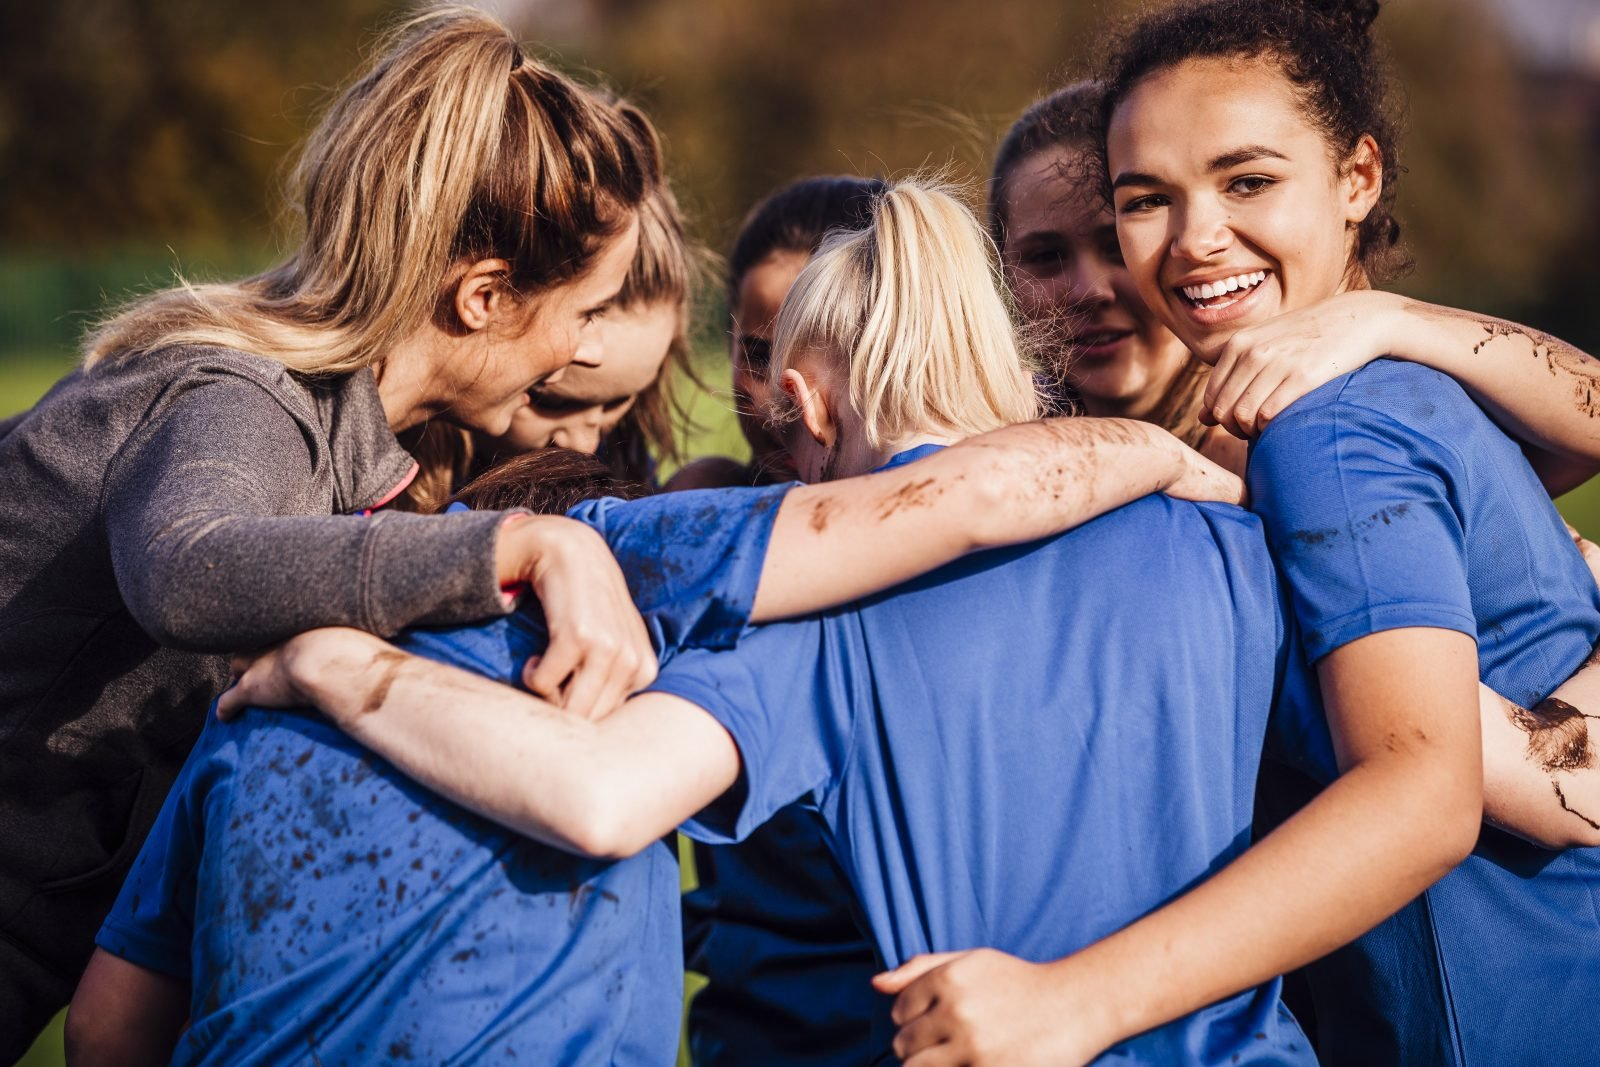 Group of young women and female adult in a football huddle